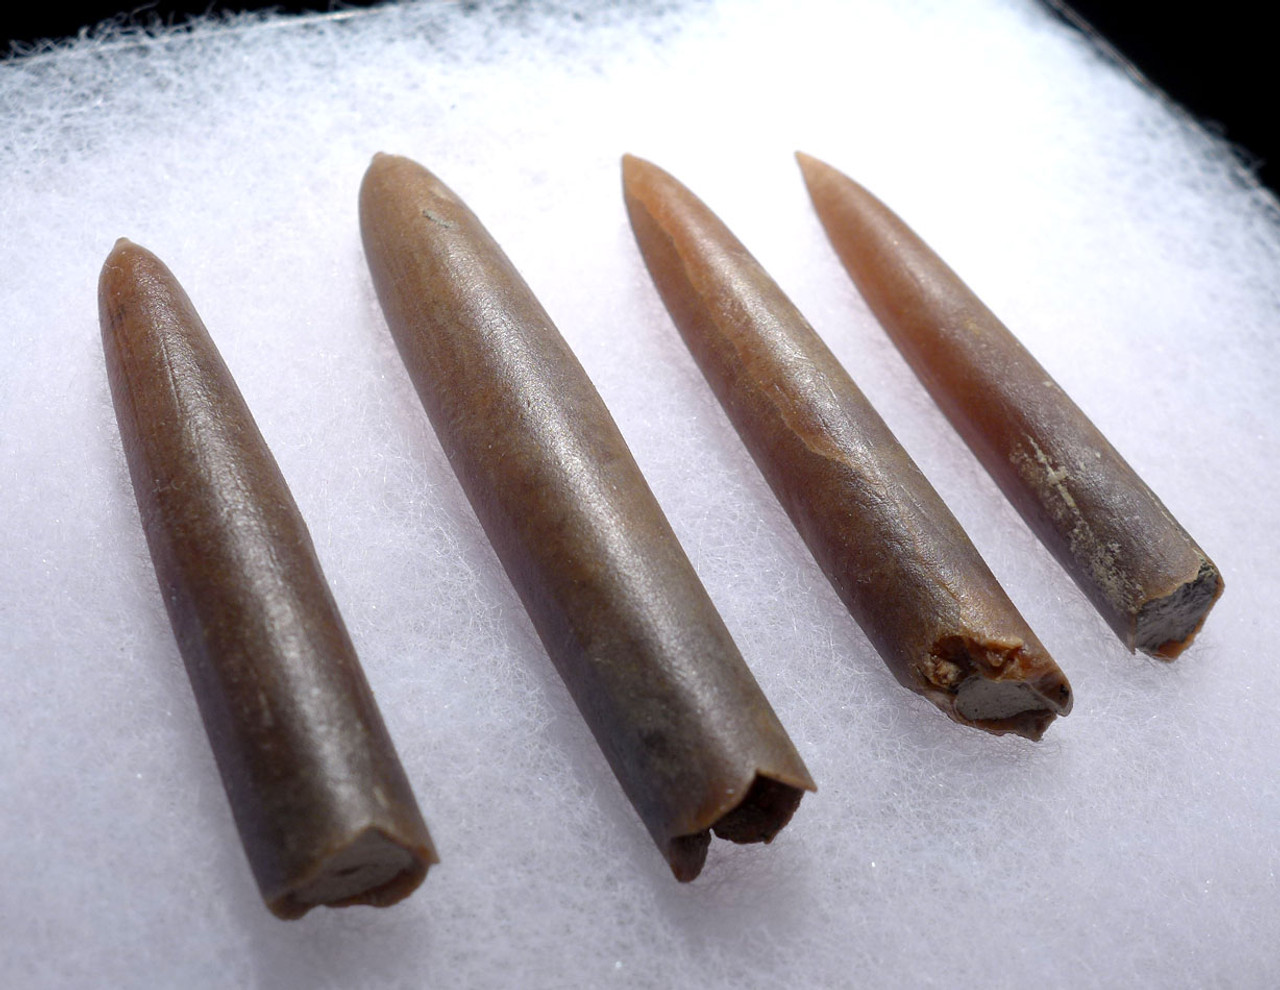 FOUR NATURAL GONIOTEUTHIS SOLID CALCITE BELEMNITES FROM THE CRETACEOUS PERIOD *BEL101